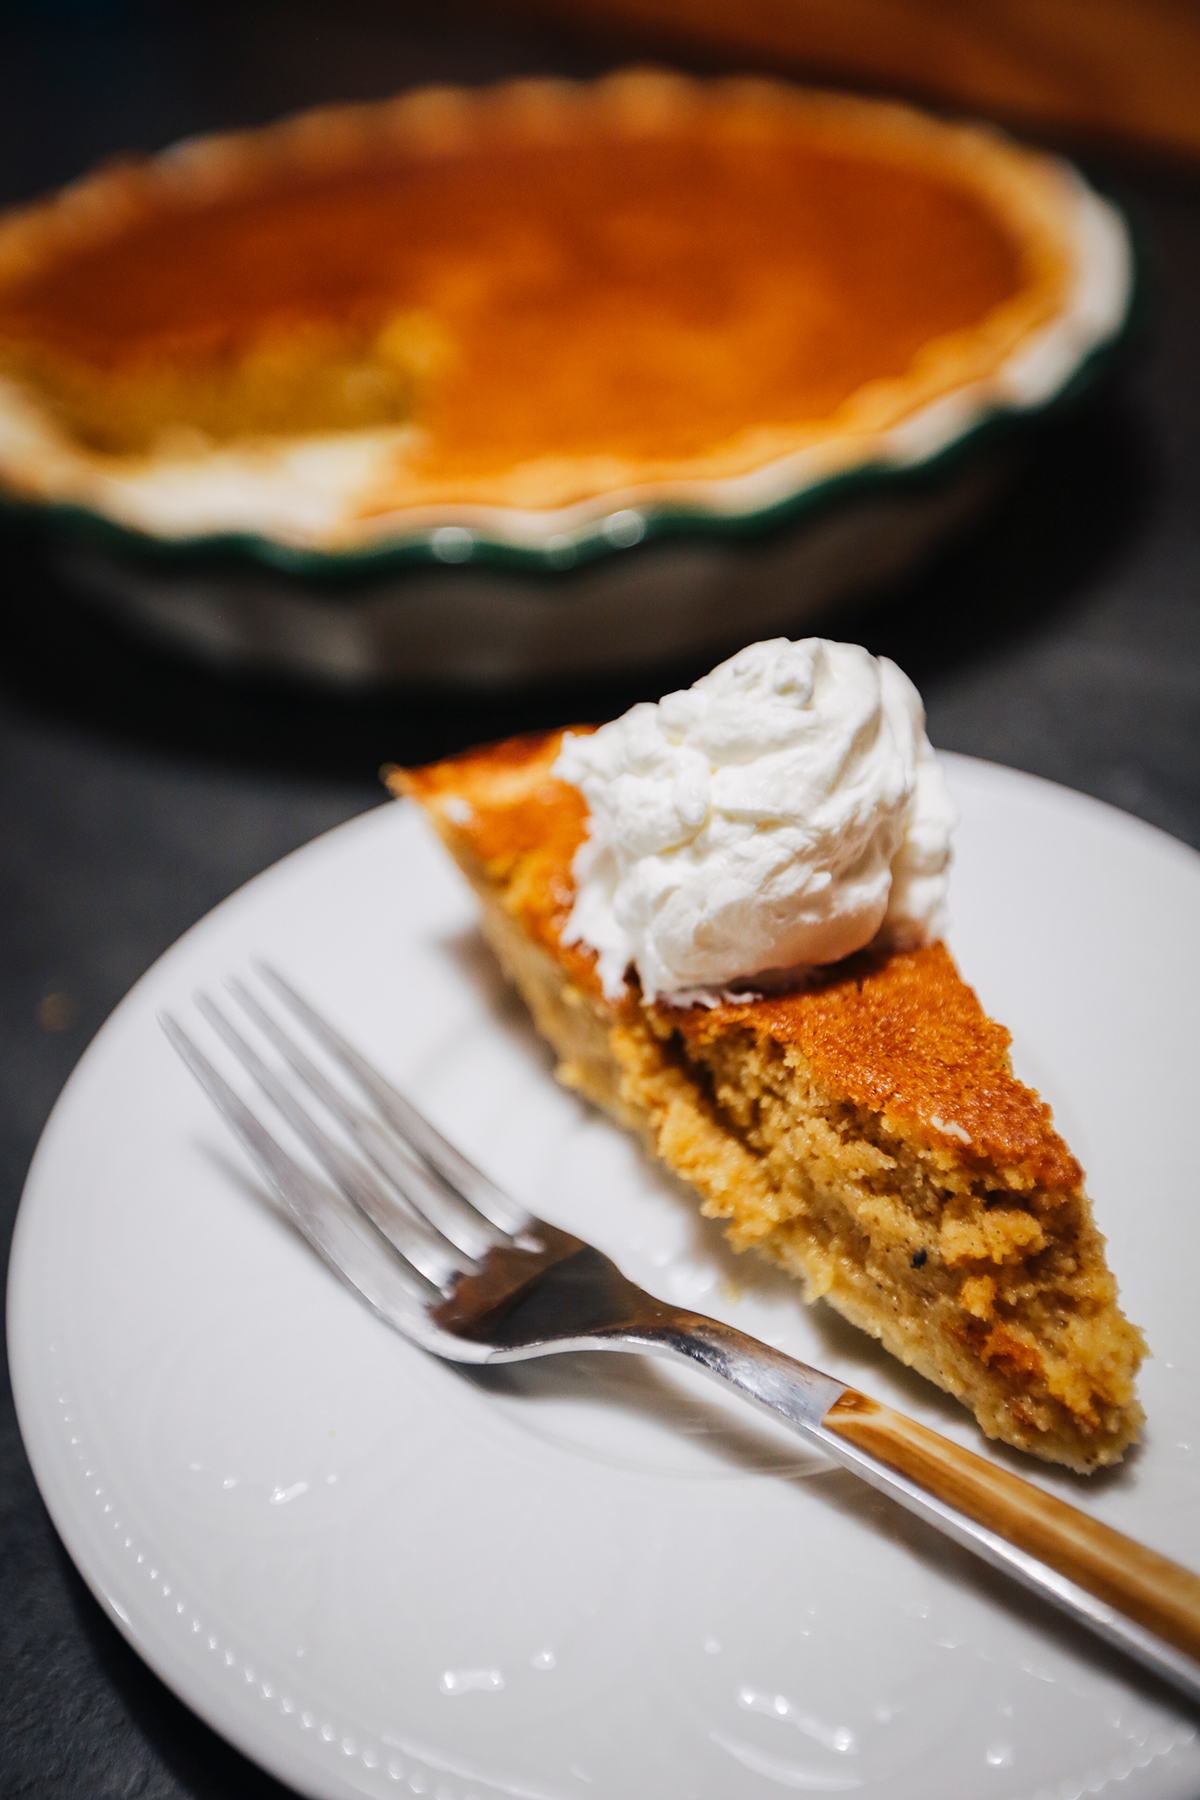 Slice of pumpkin pie